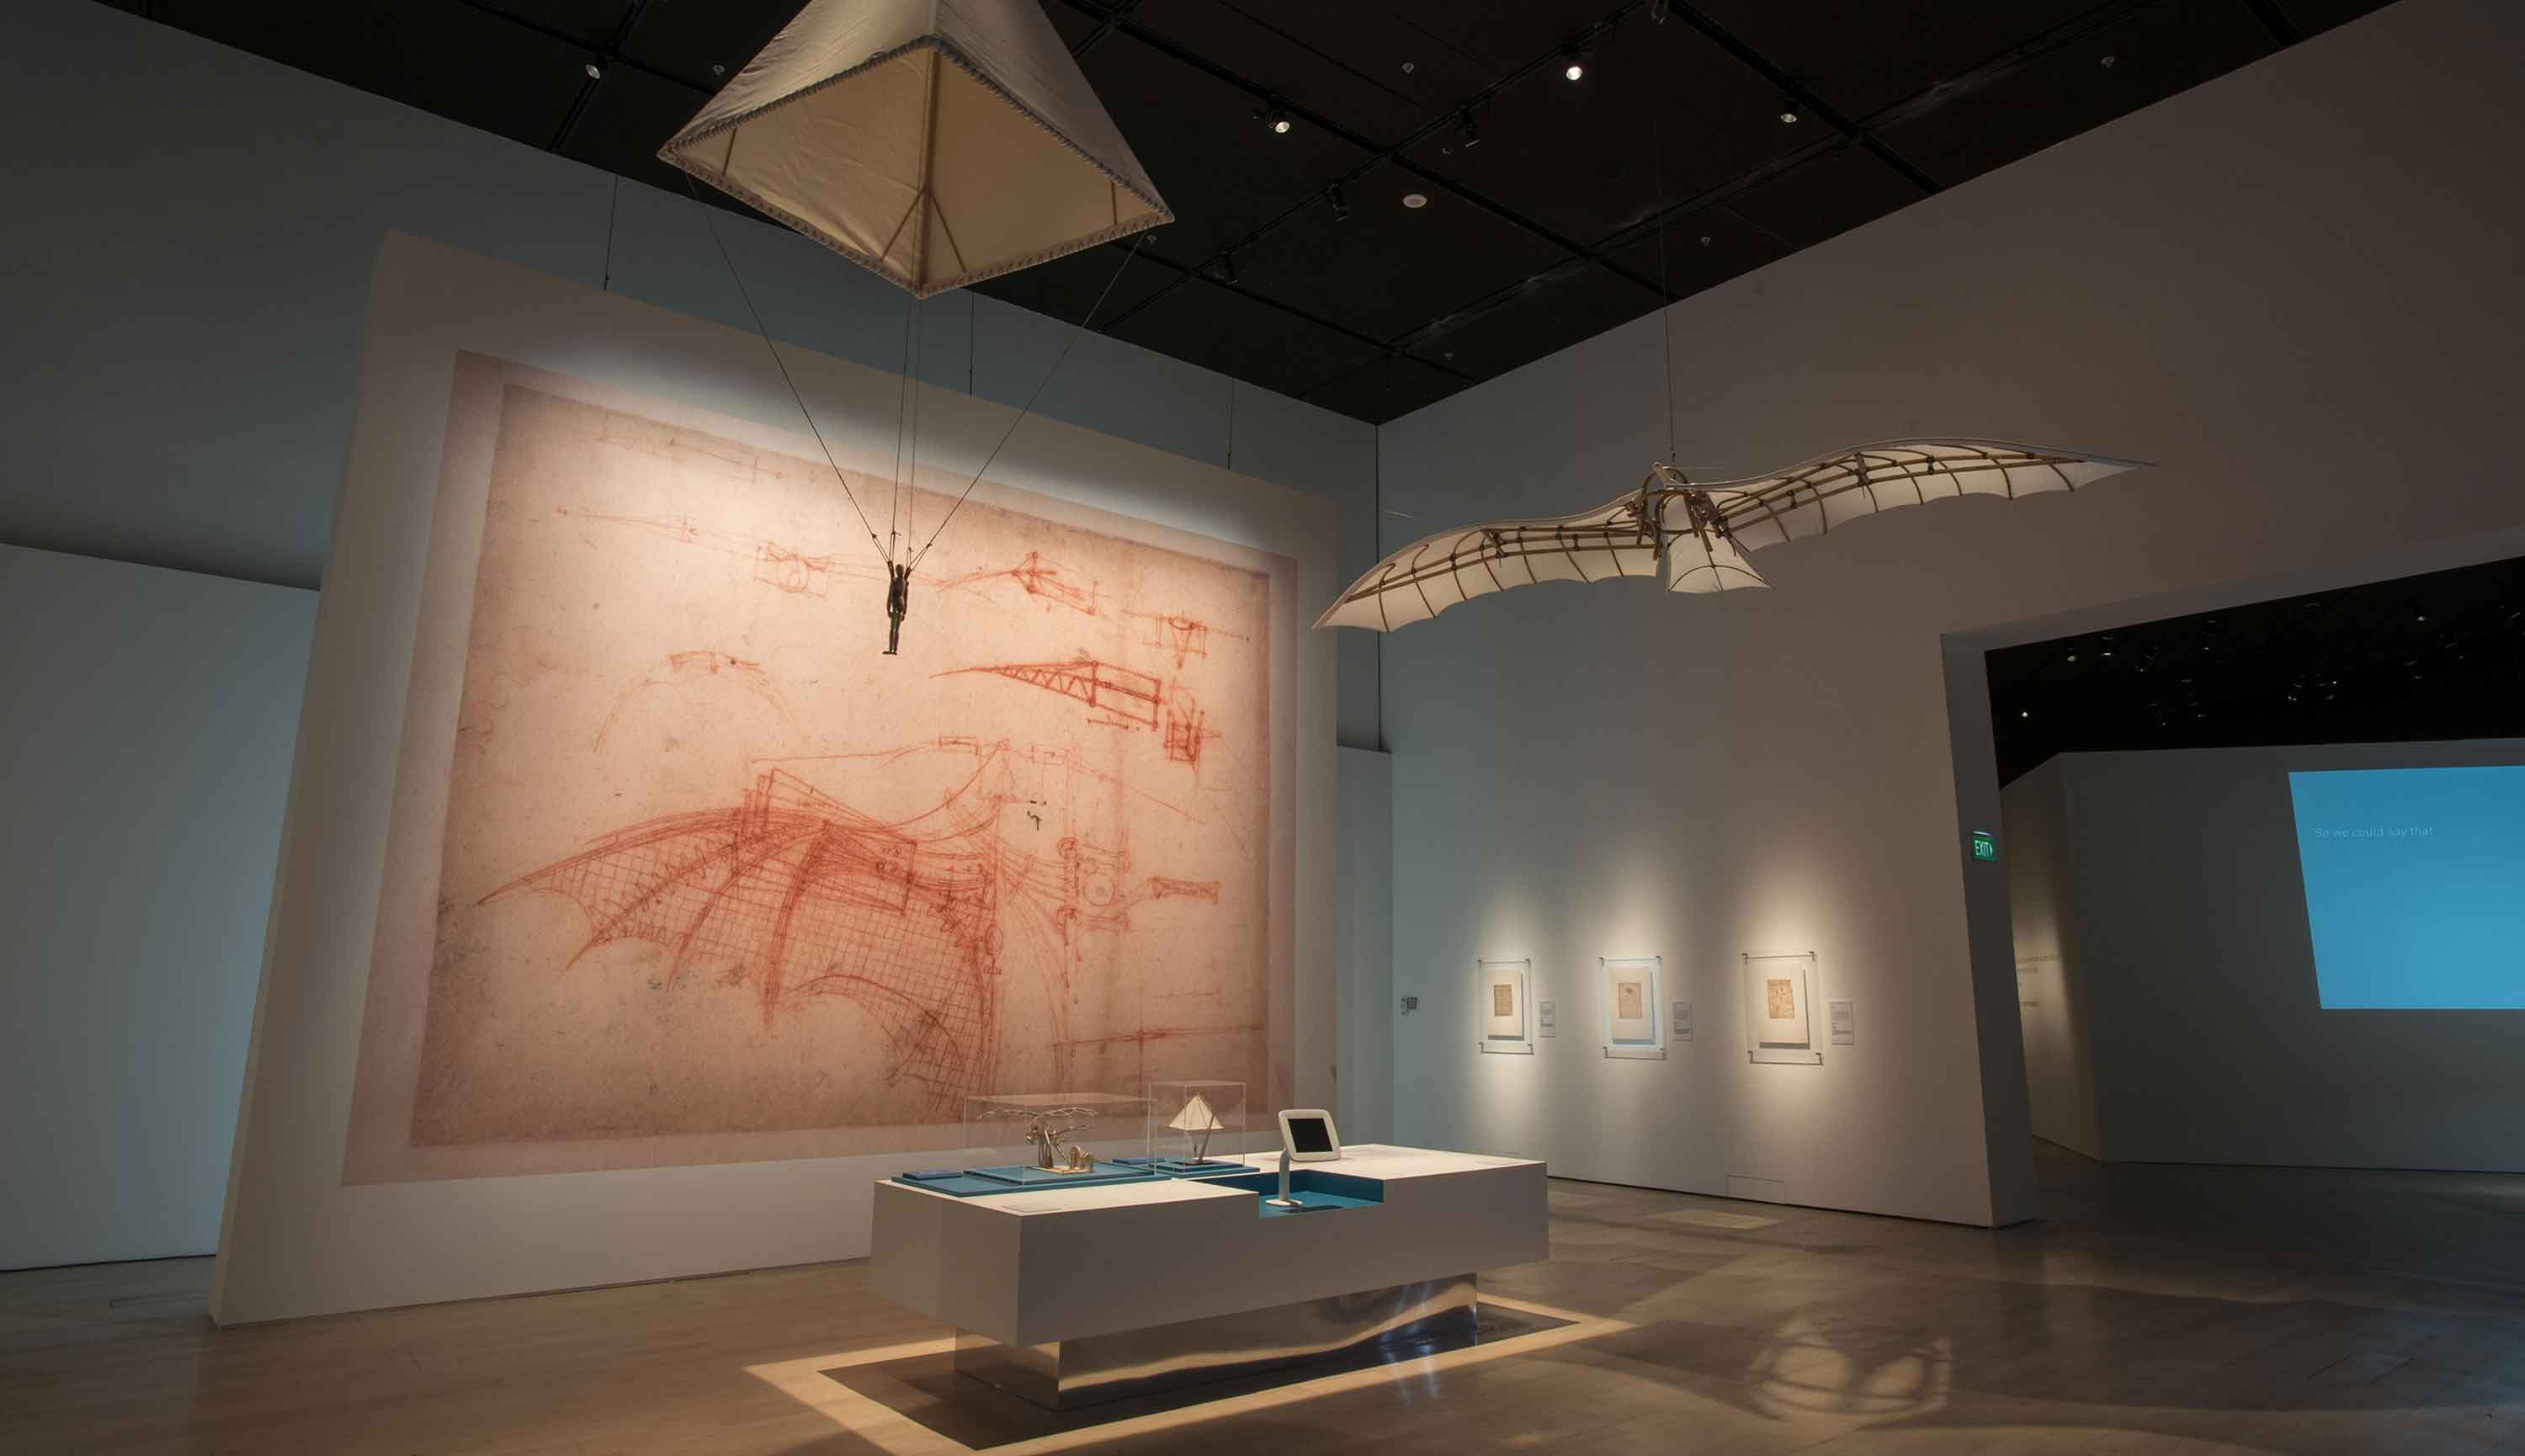 Da Vinci Natural Science Exhibit Gallery Image